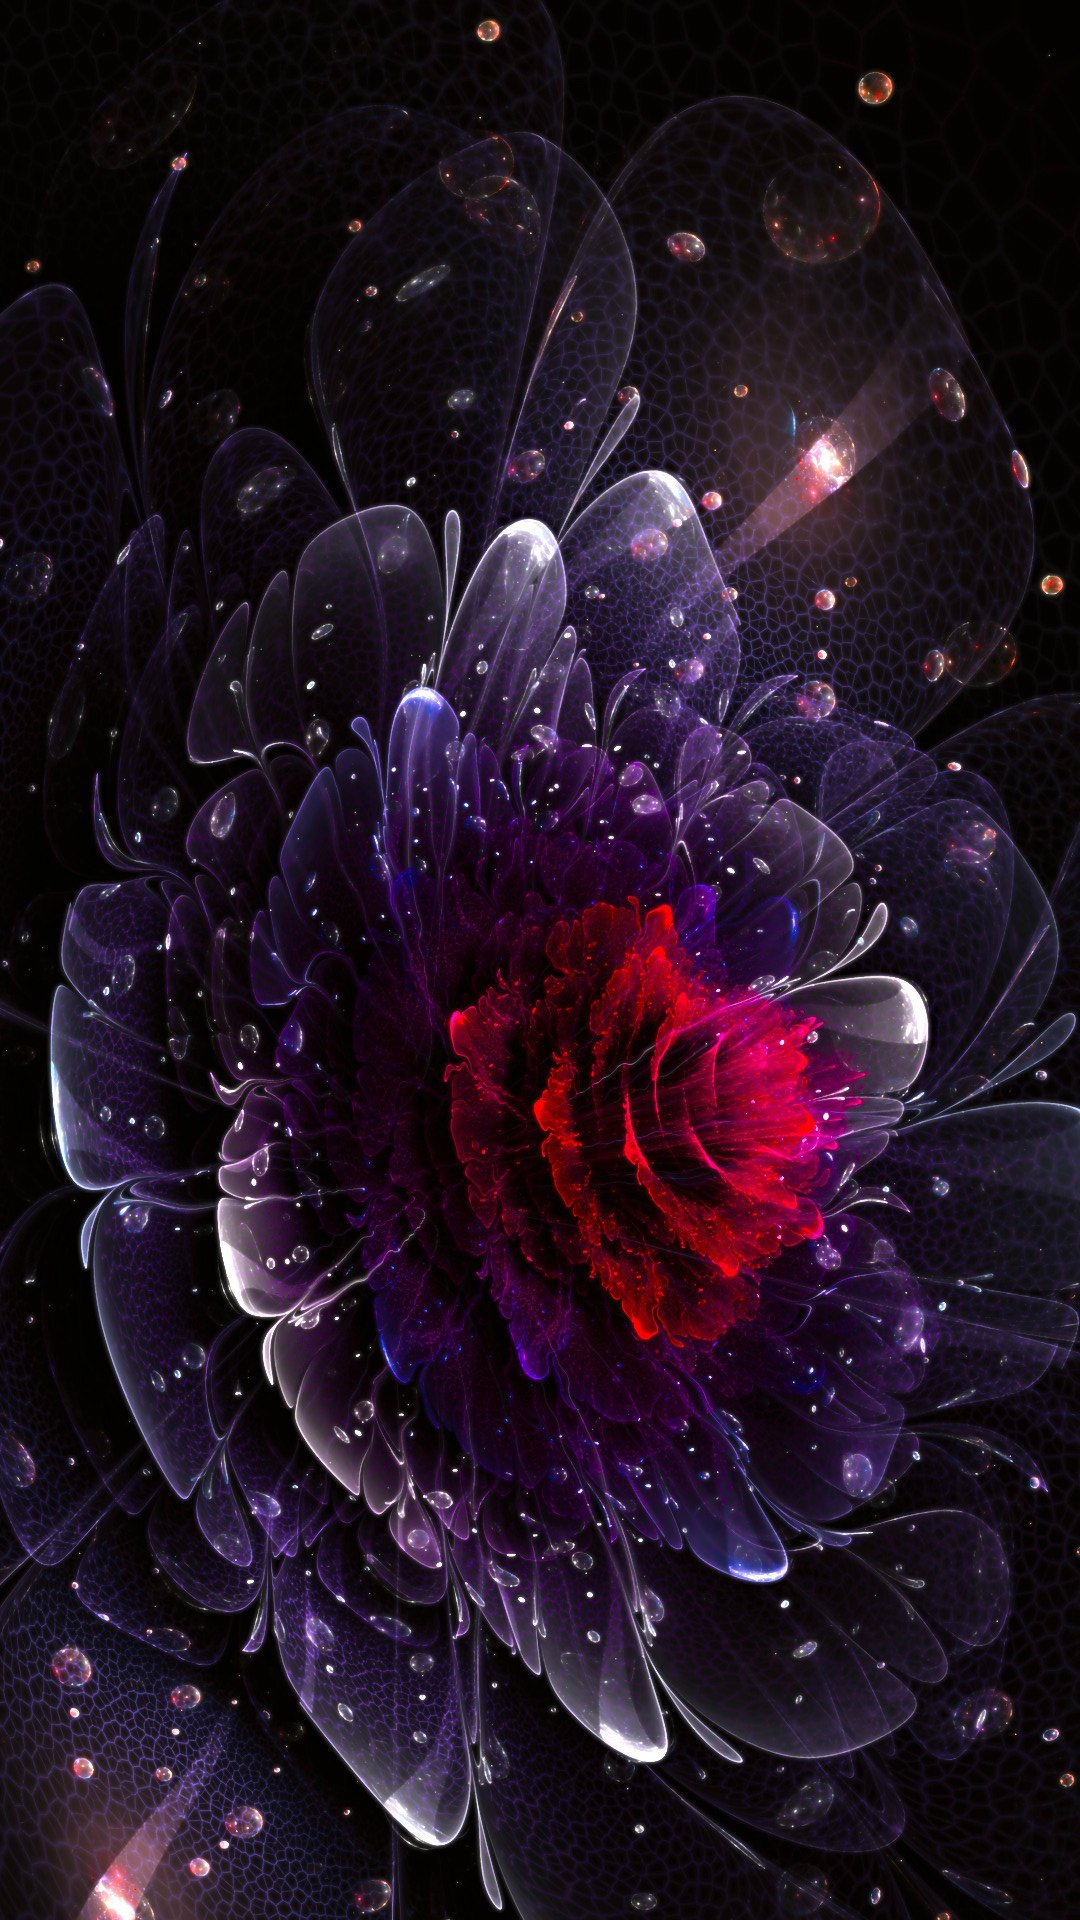 flower violet abstraction wallpaper 1080x1920